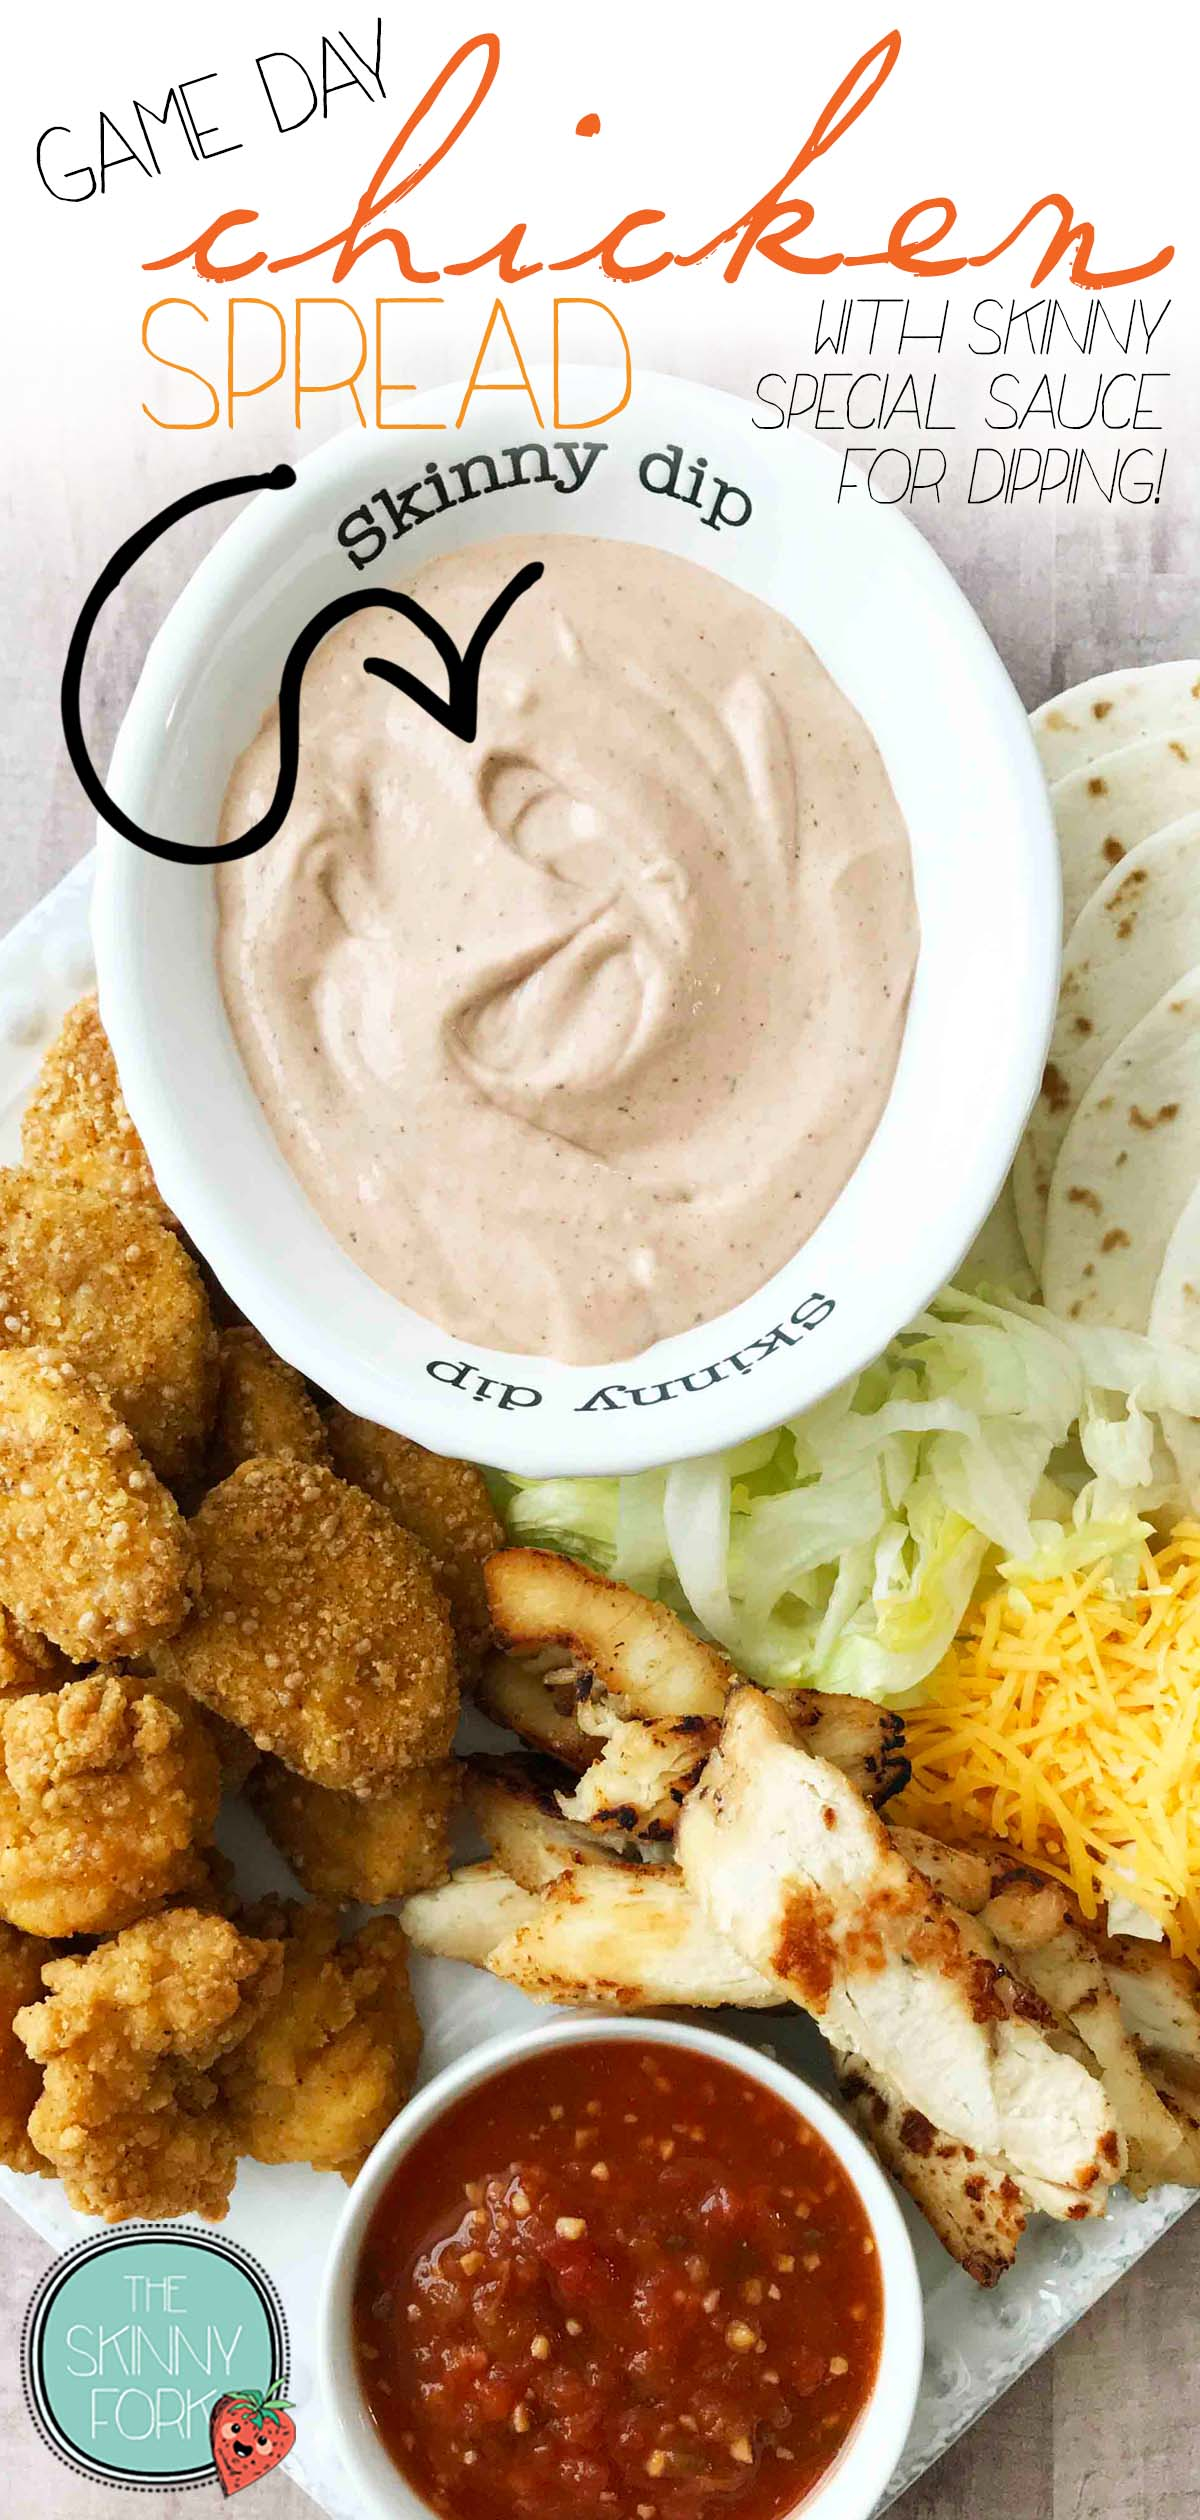 Game Day Chicken Spread (With Skinny Special Sauce for Dipping!)